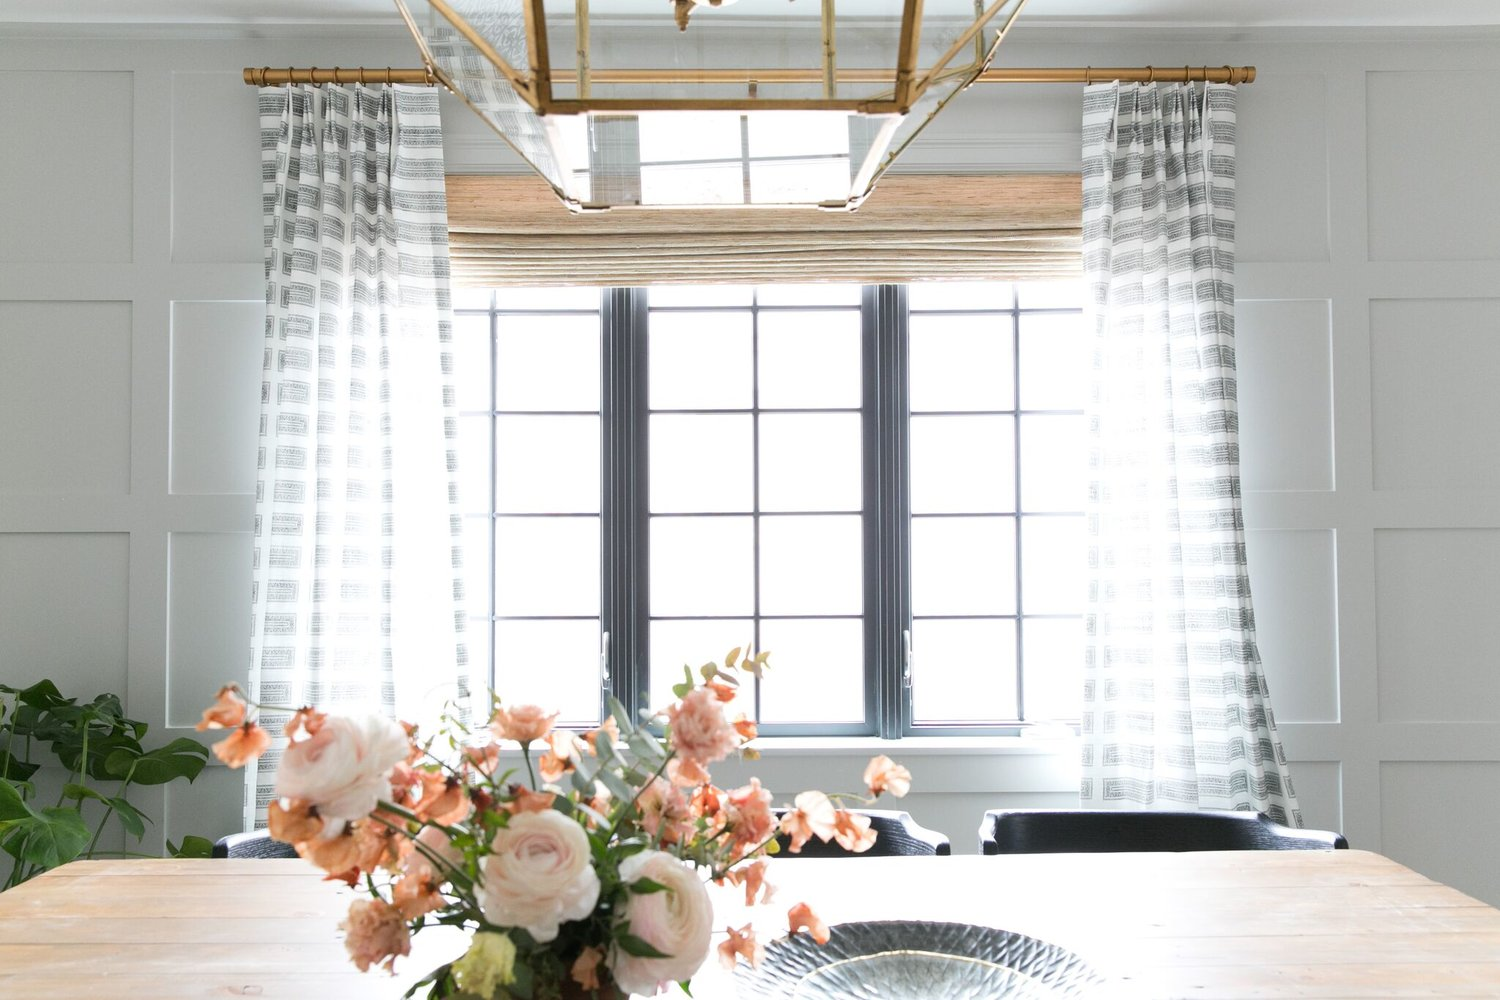 Large window with white curtains